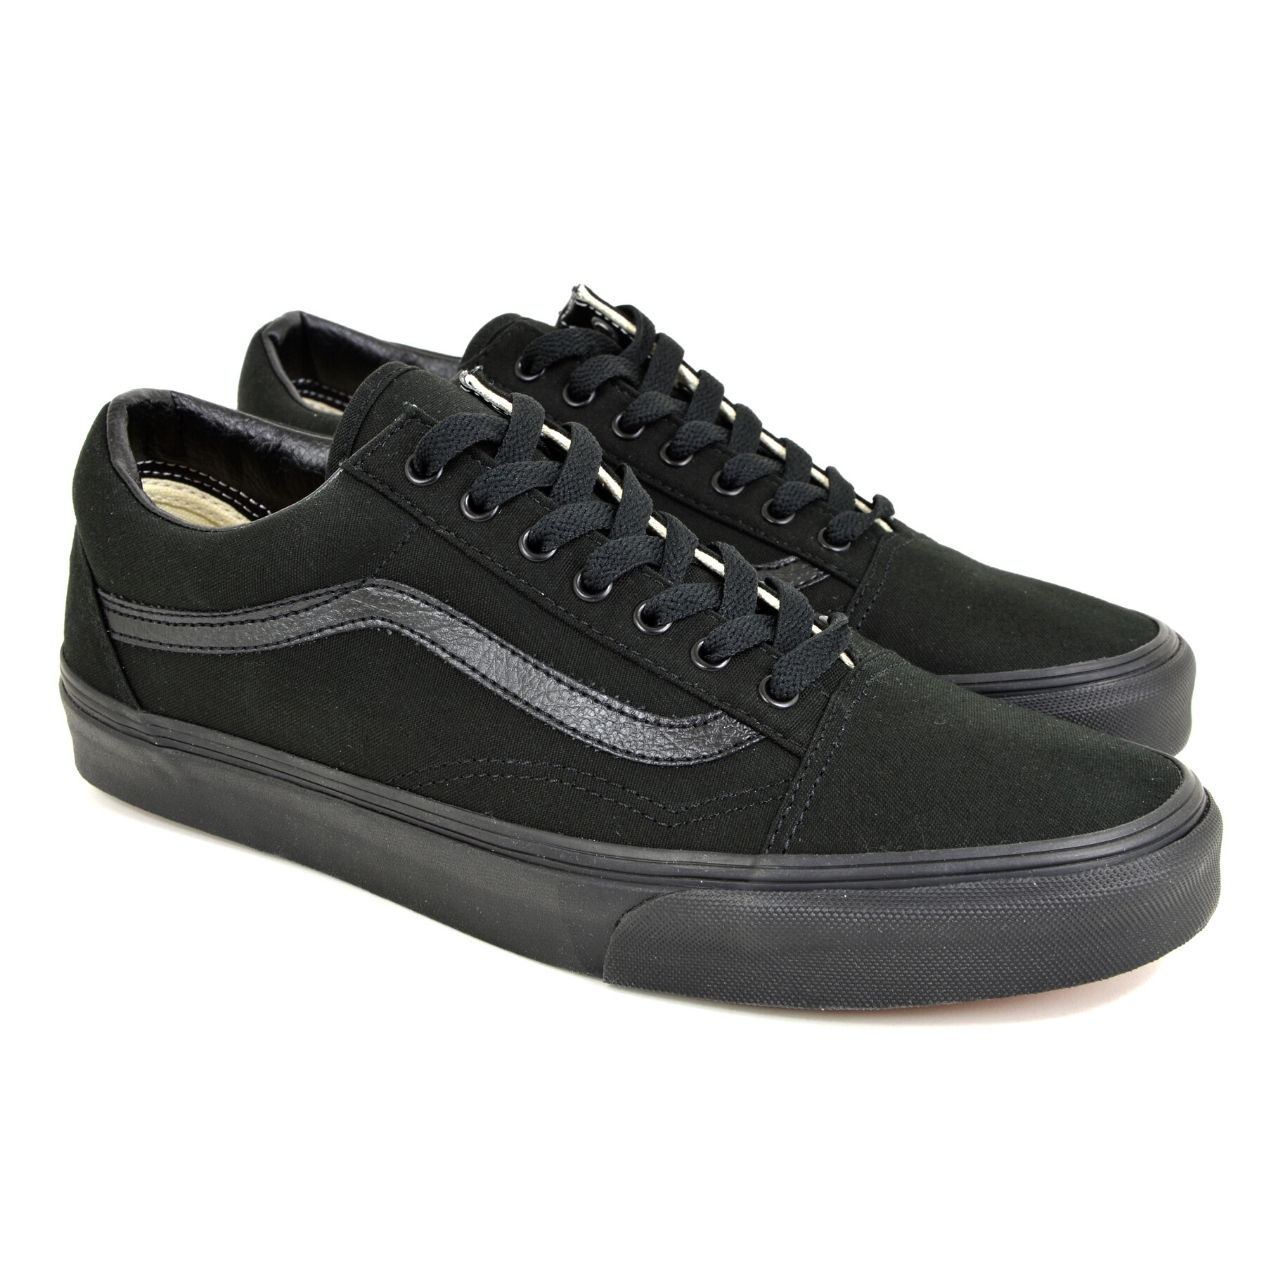 Vans - OLD SKOOL - Black/Black